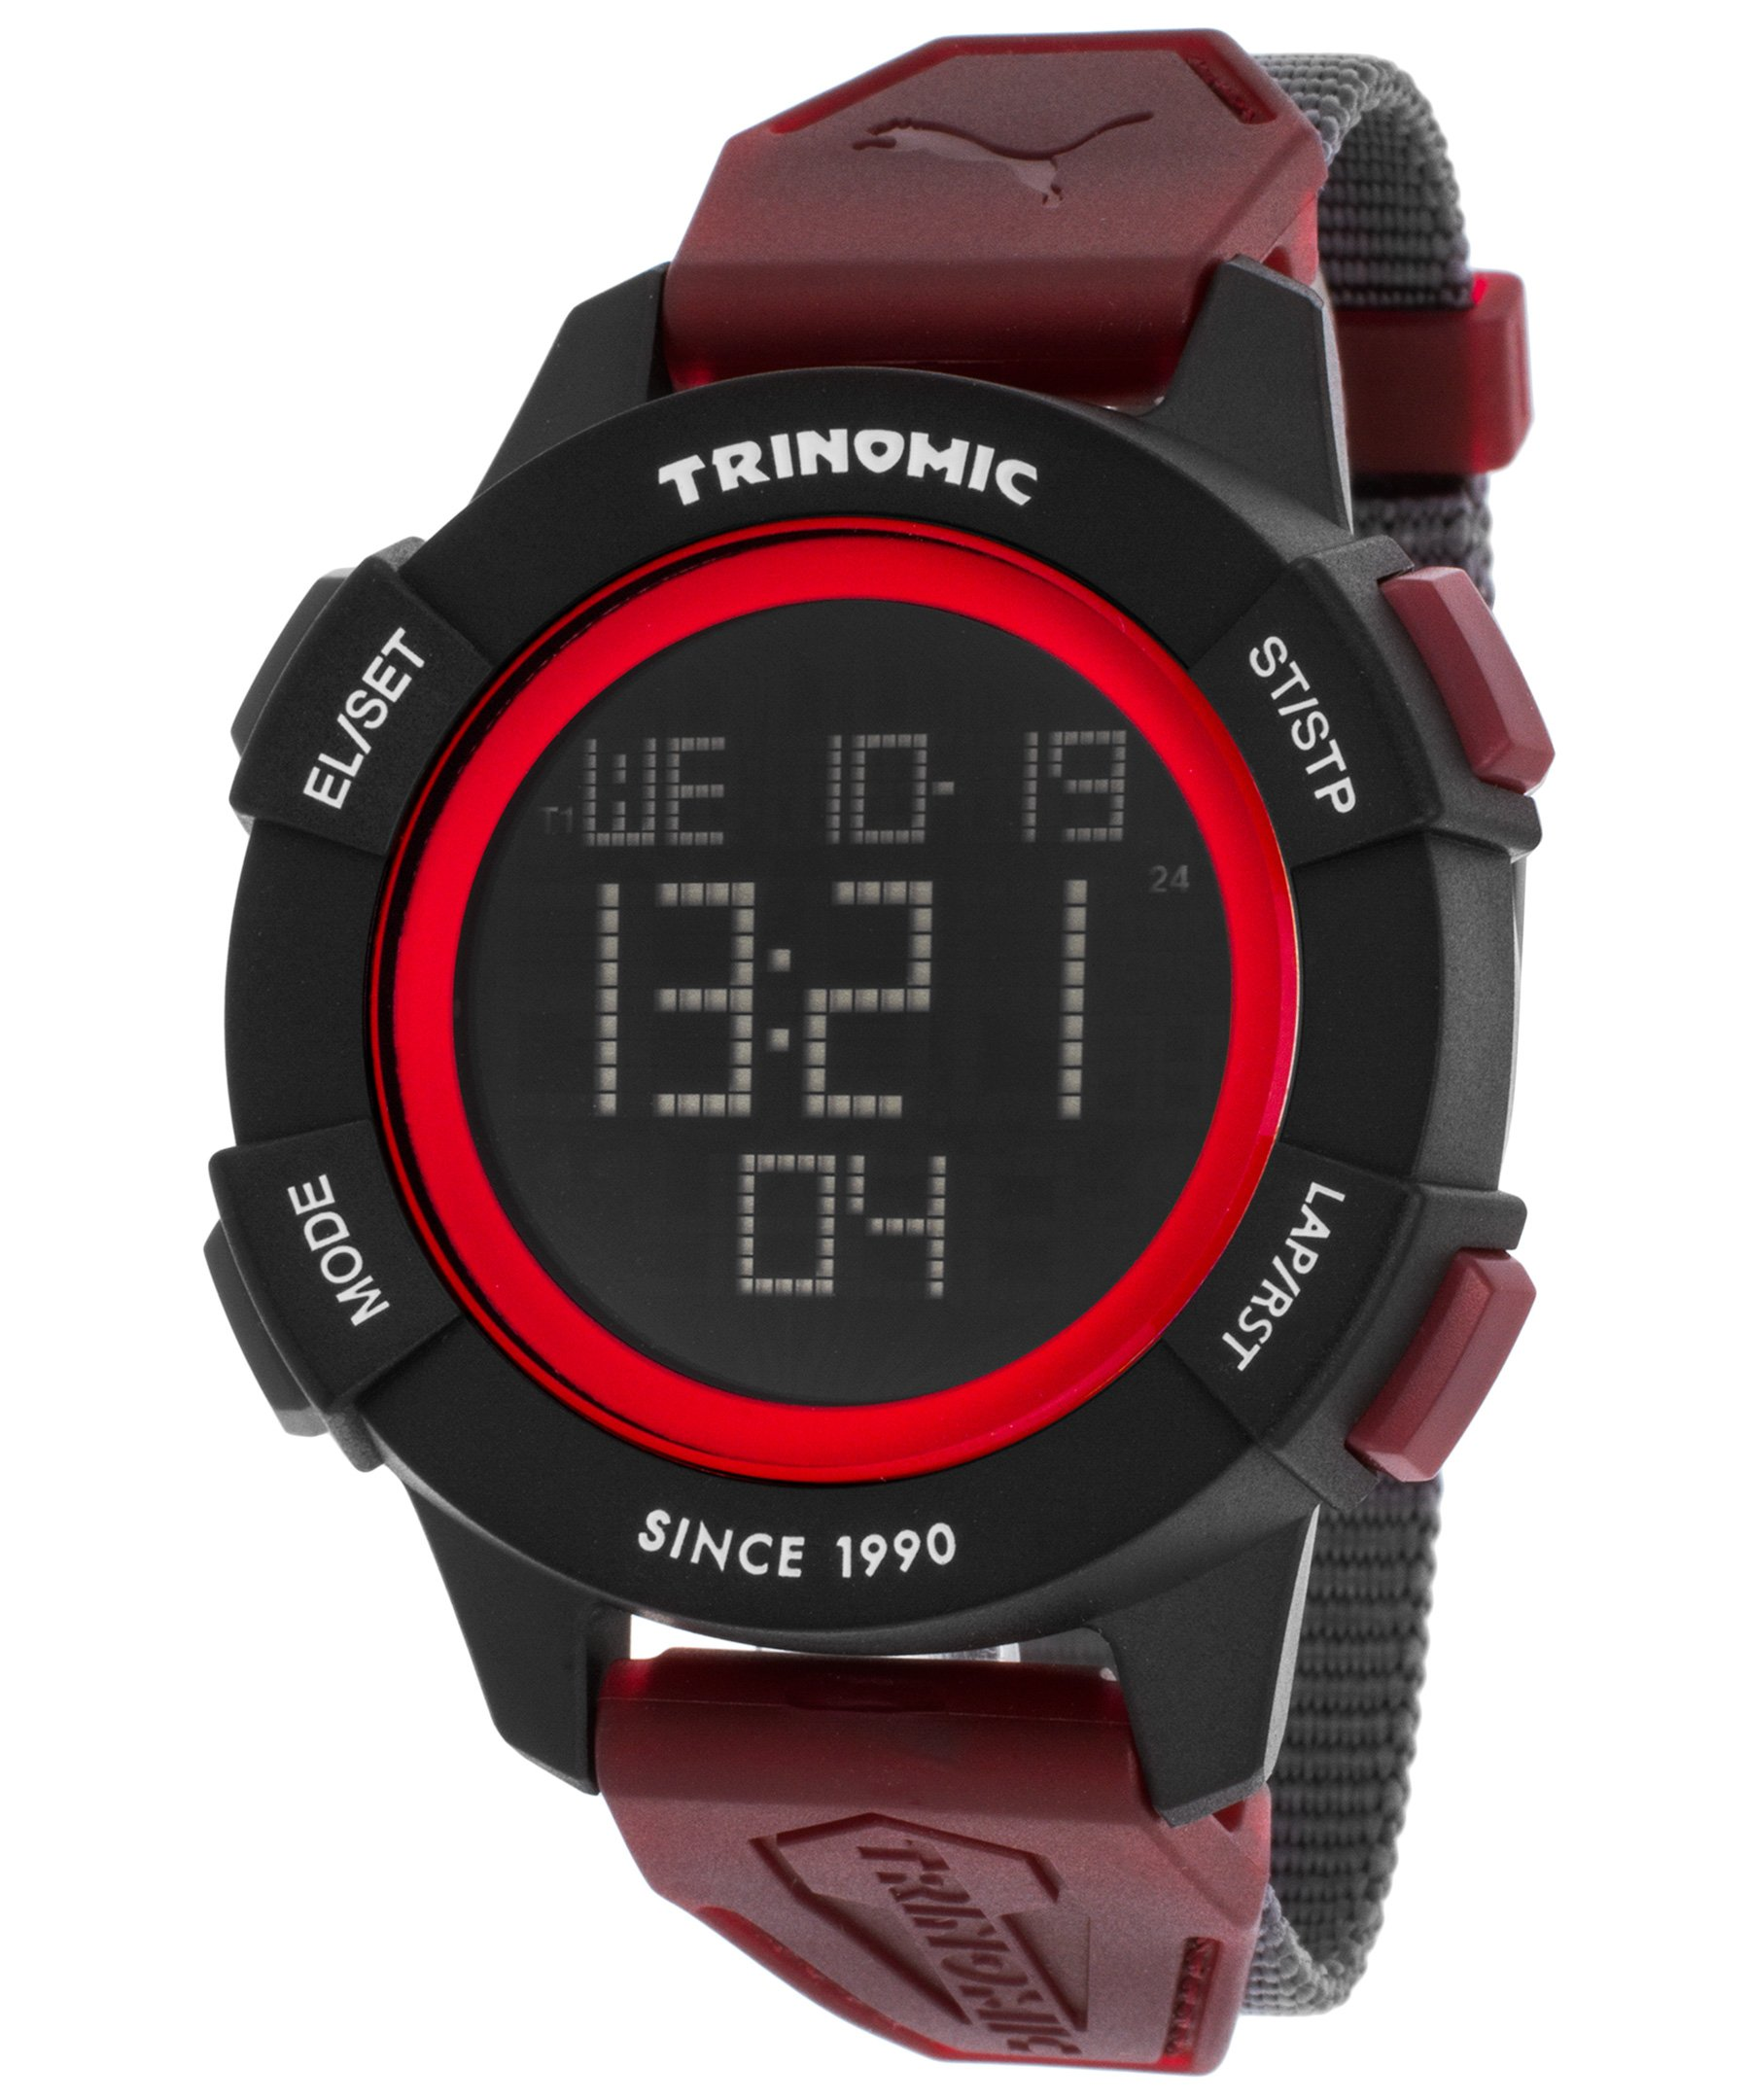 PUMA Unisex PU911271003 Trinomic Red Digital Display Watch by PUMA